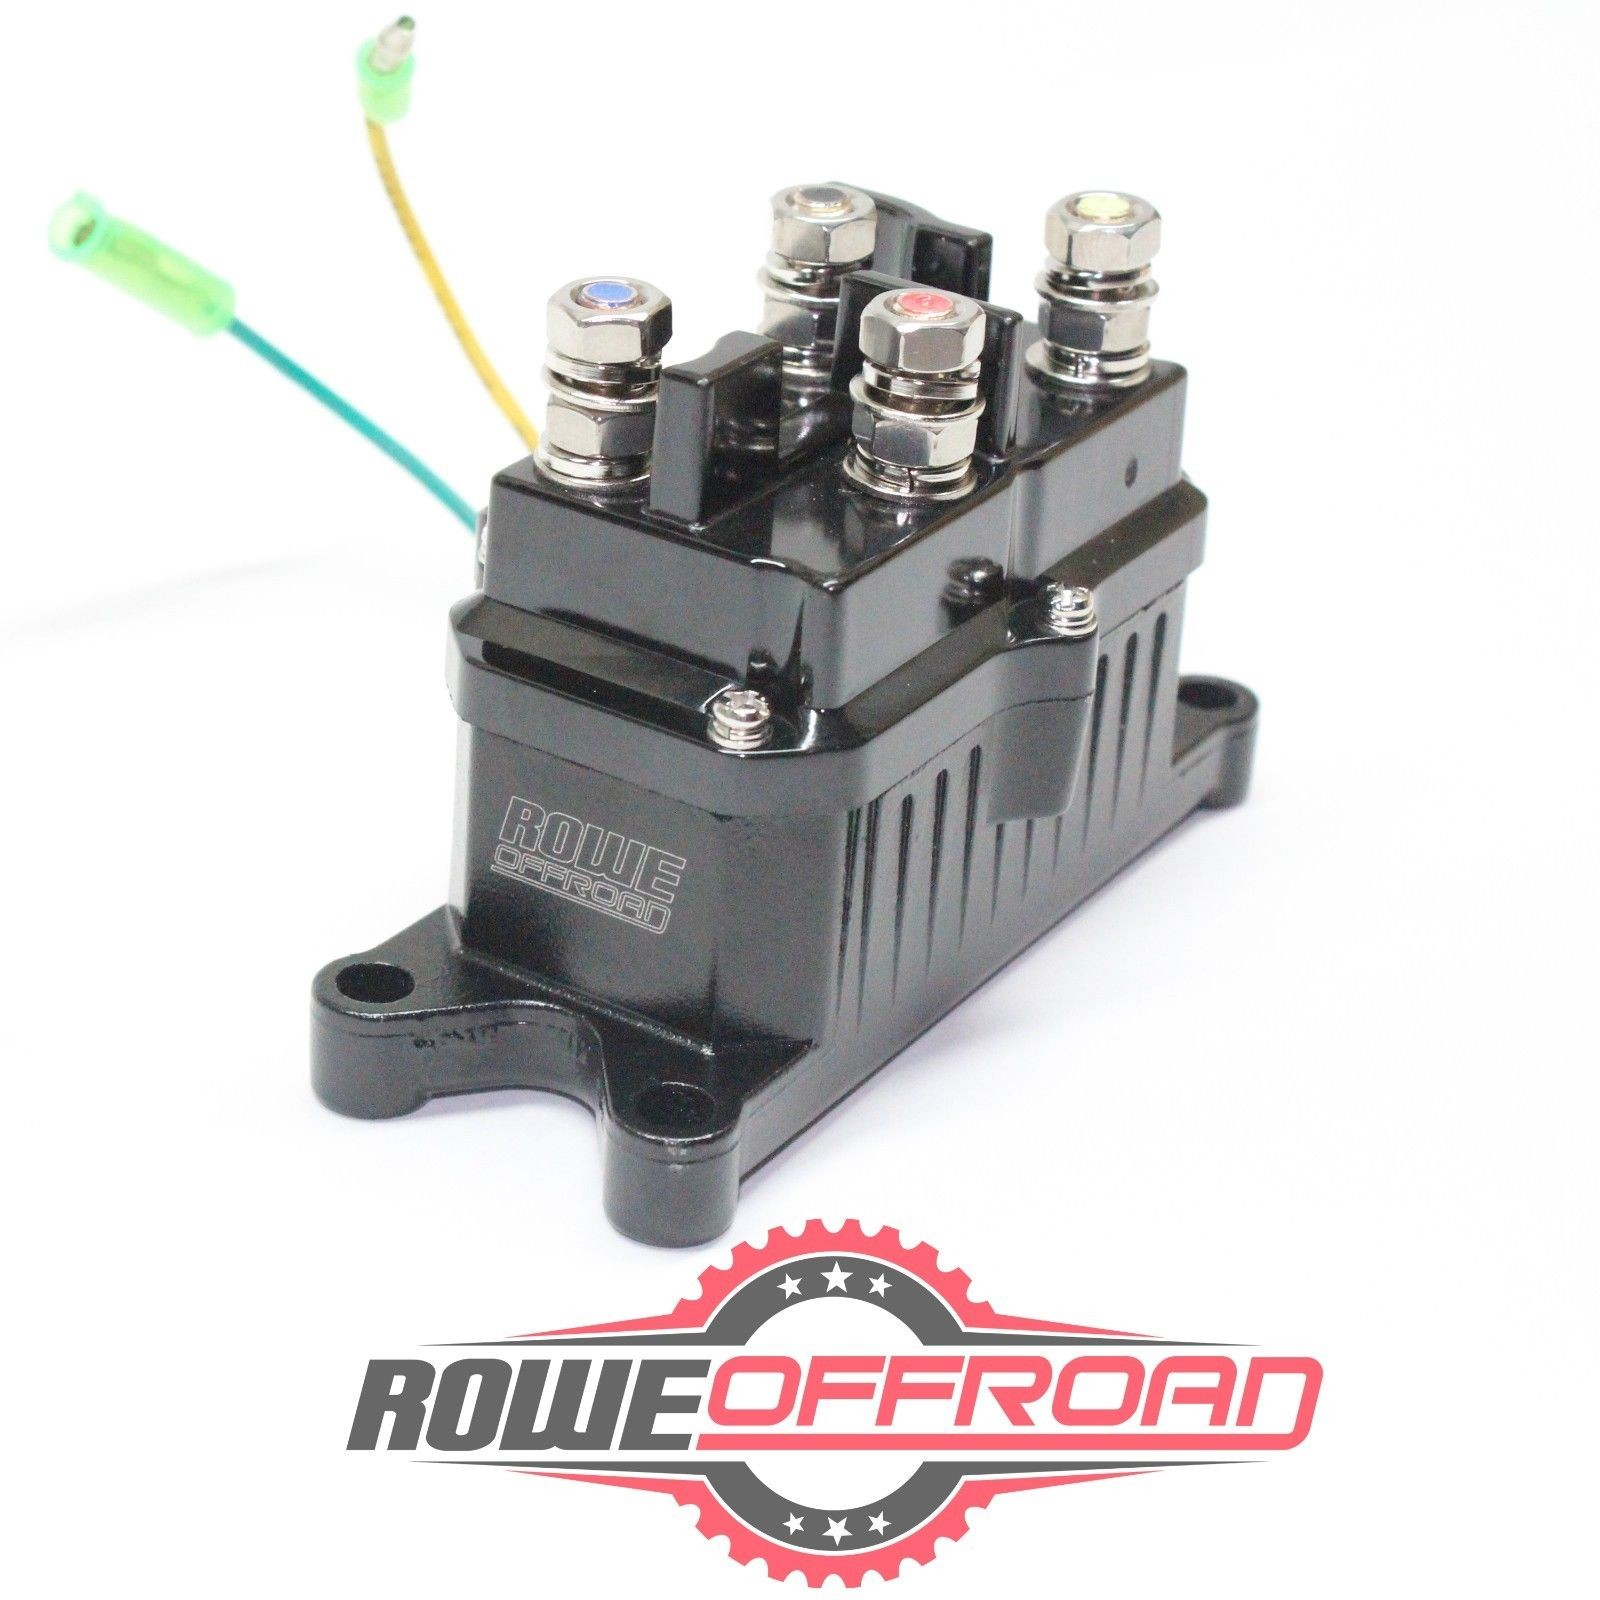 Winch Contactor Wiring Diagram atv Utv Winch 12v solenoid Relay Contactor Switch Warn Wiring Of Winch Contactor Wiring Diagram